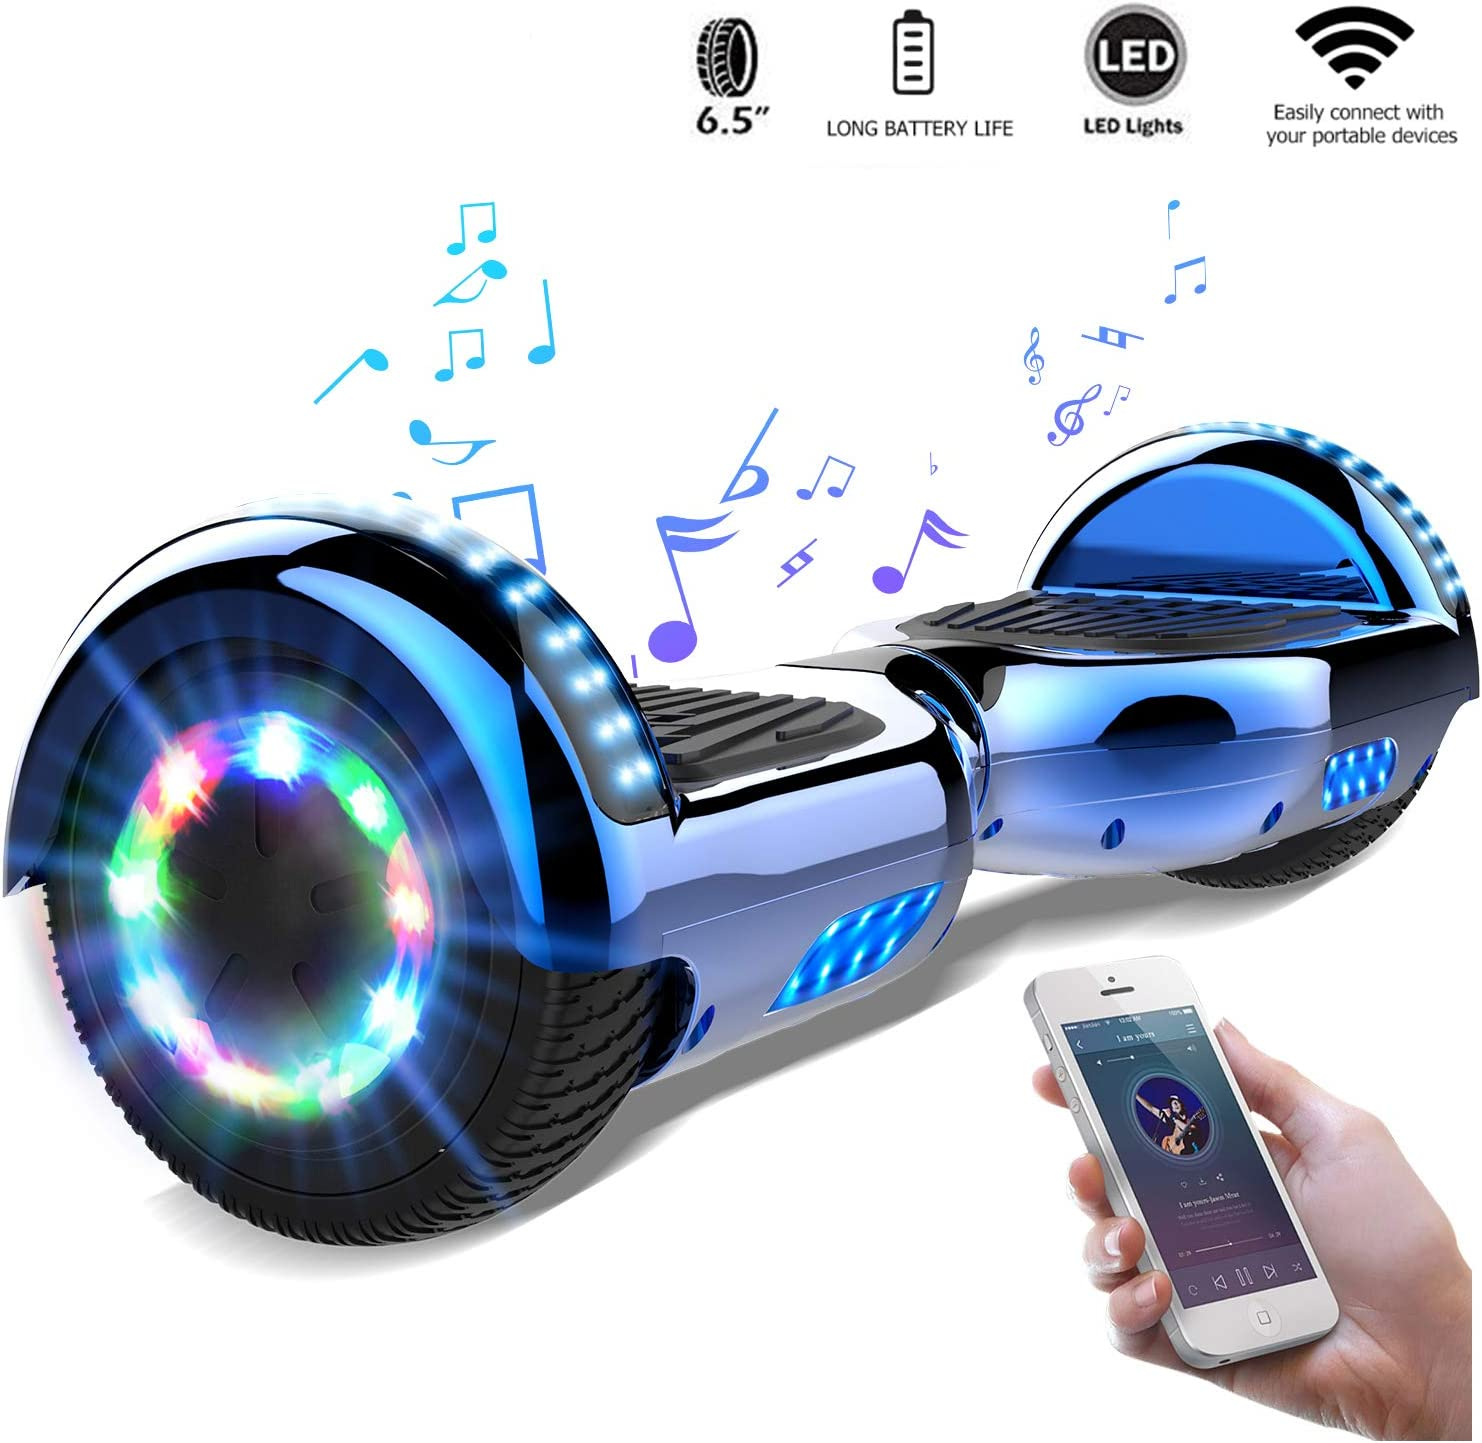 "CITYSPORTS 6.5"" Hoverboard Self-Balancing Scooter with Built in Speaker LED Lights / UK"